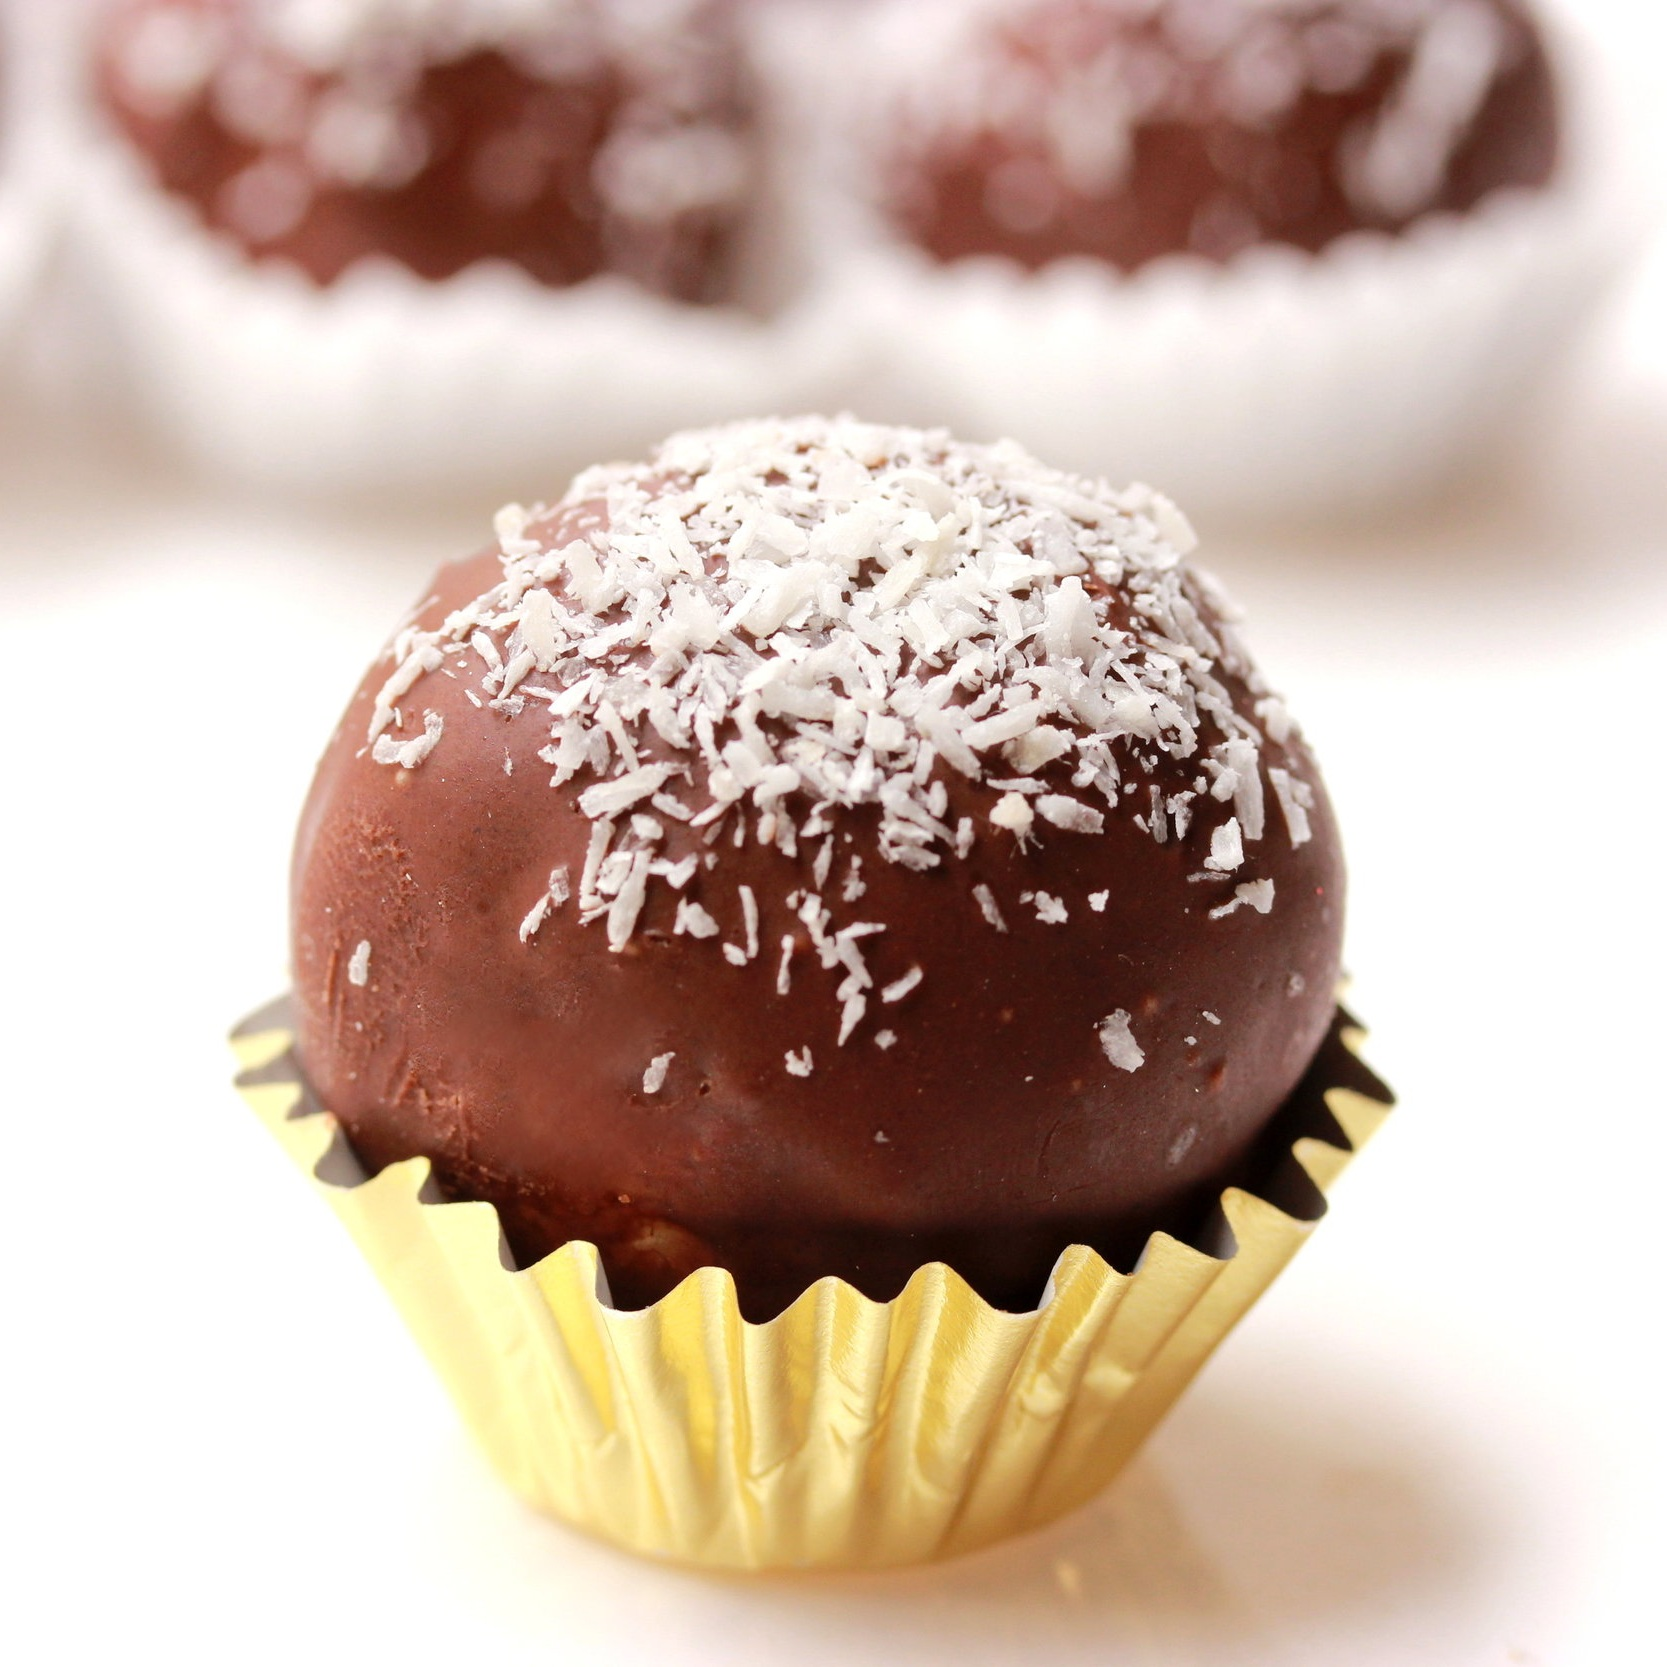 Chocolate Covered Coconut Bonbon   Ingredients: Organic Coconut, Milk, Sugar and Chocolate